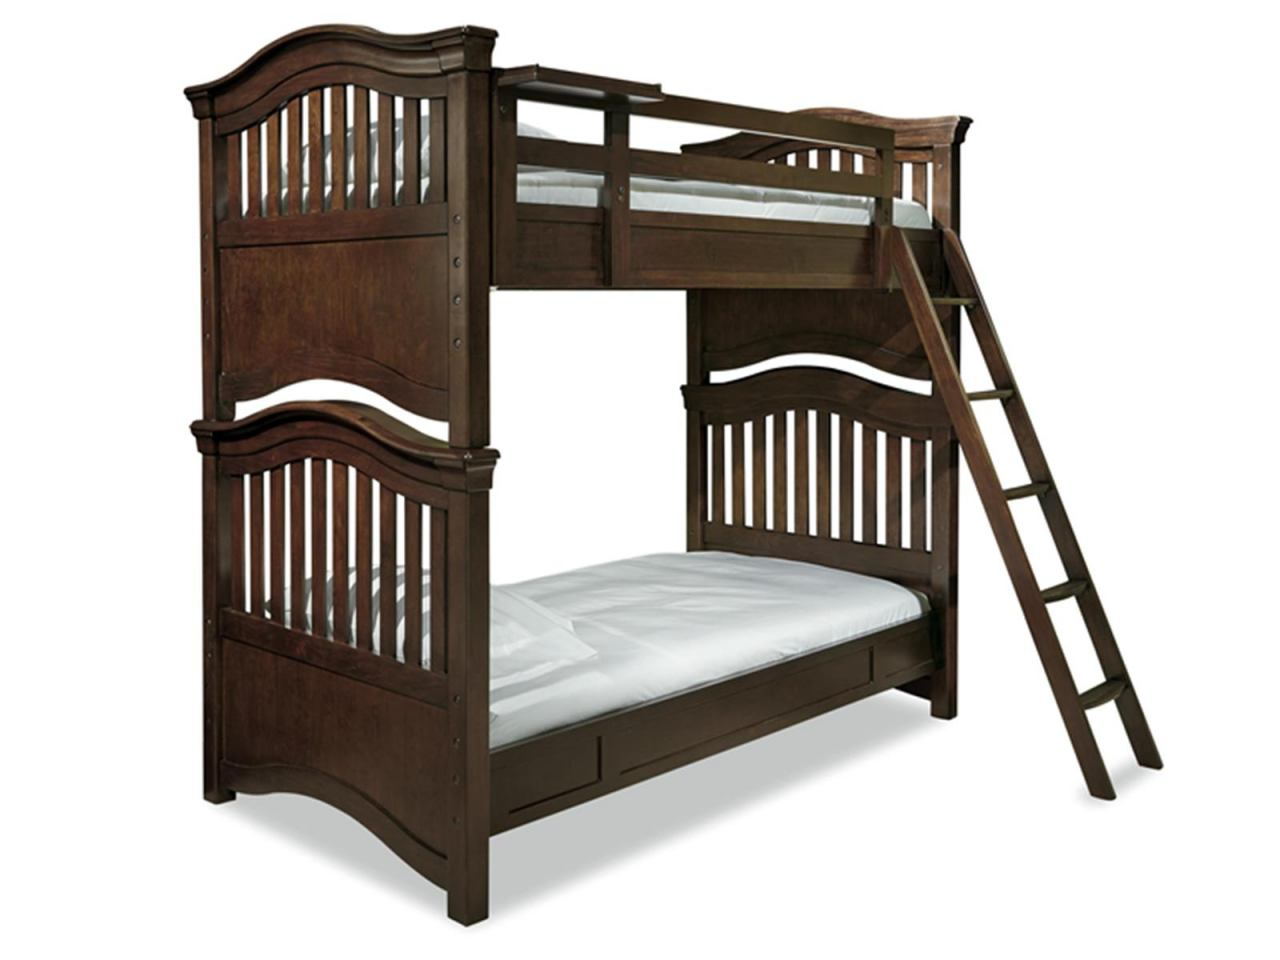 Universal Smartstuff Classics 4.0 Twin Bunk Bed in Classic Cherry 1312530 CODE:UNIV20 for 20% Off